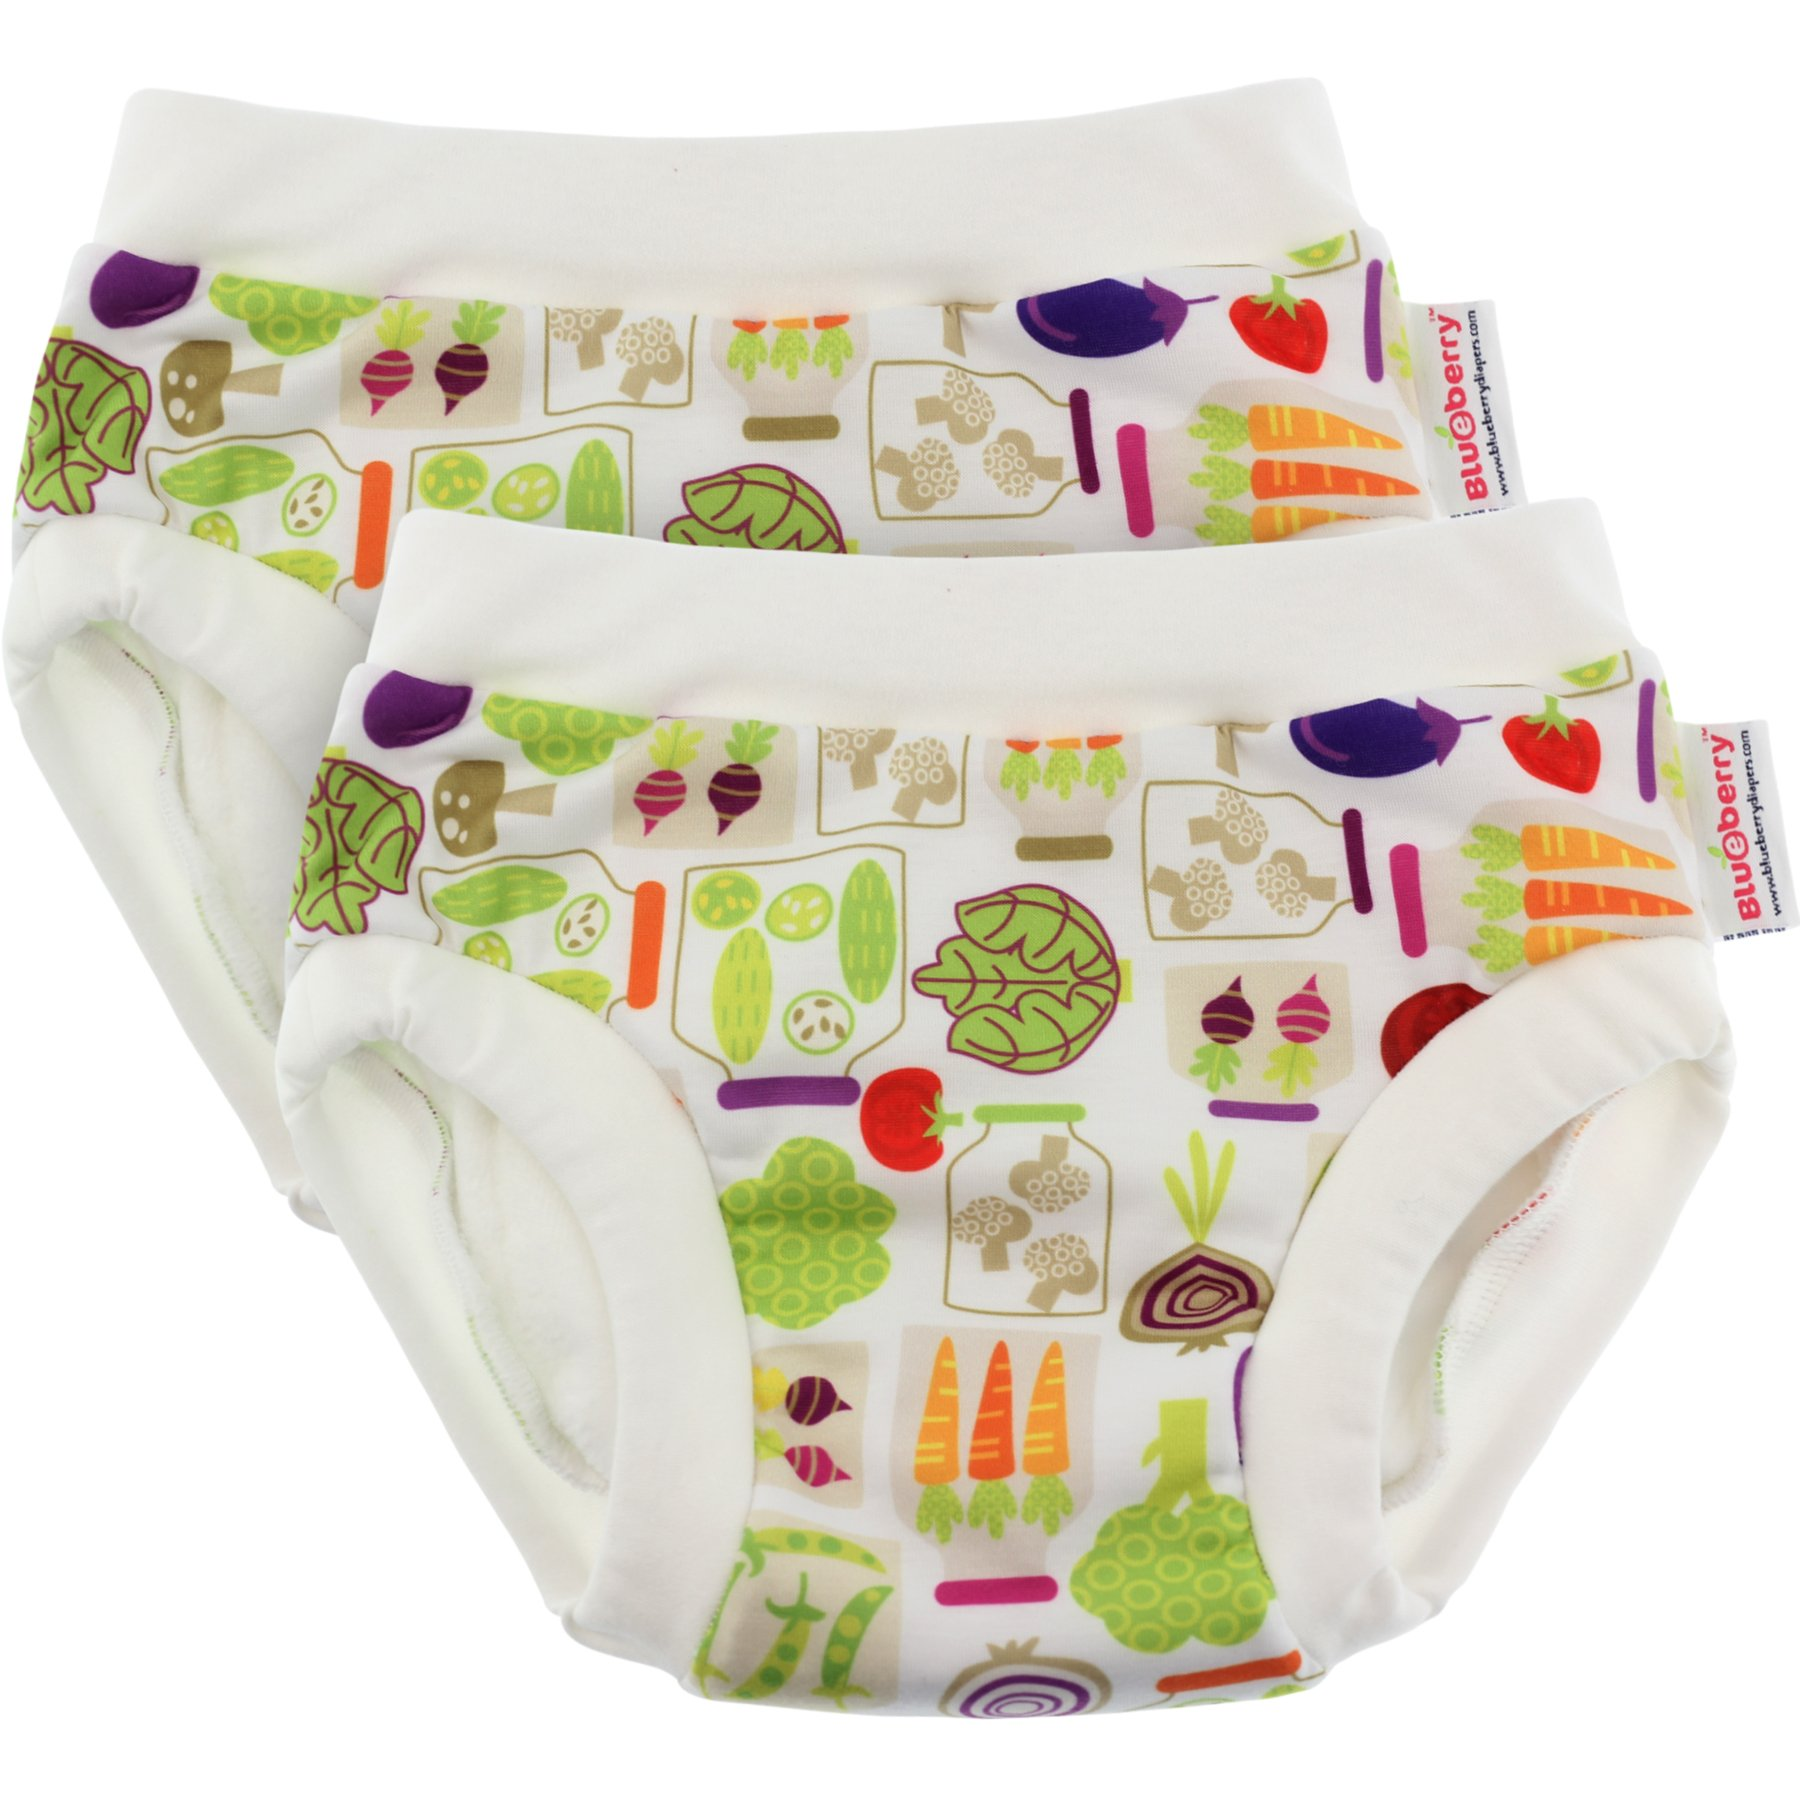 Blueberry Training Pants, Bundle of 2 (Medium, Veggies)